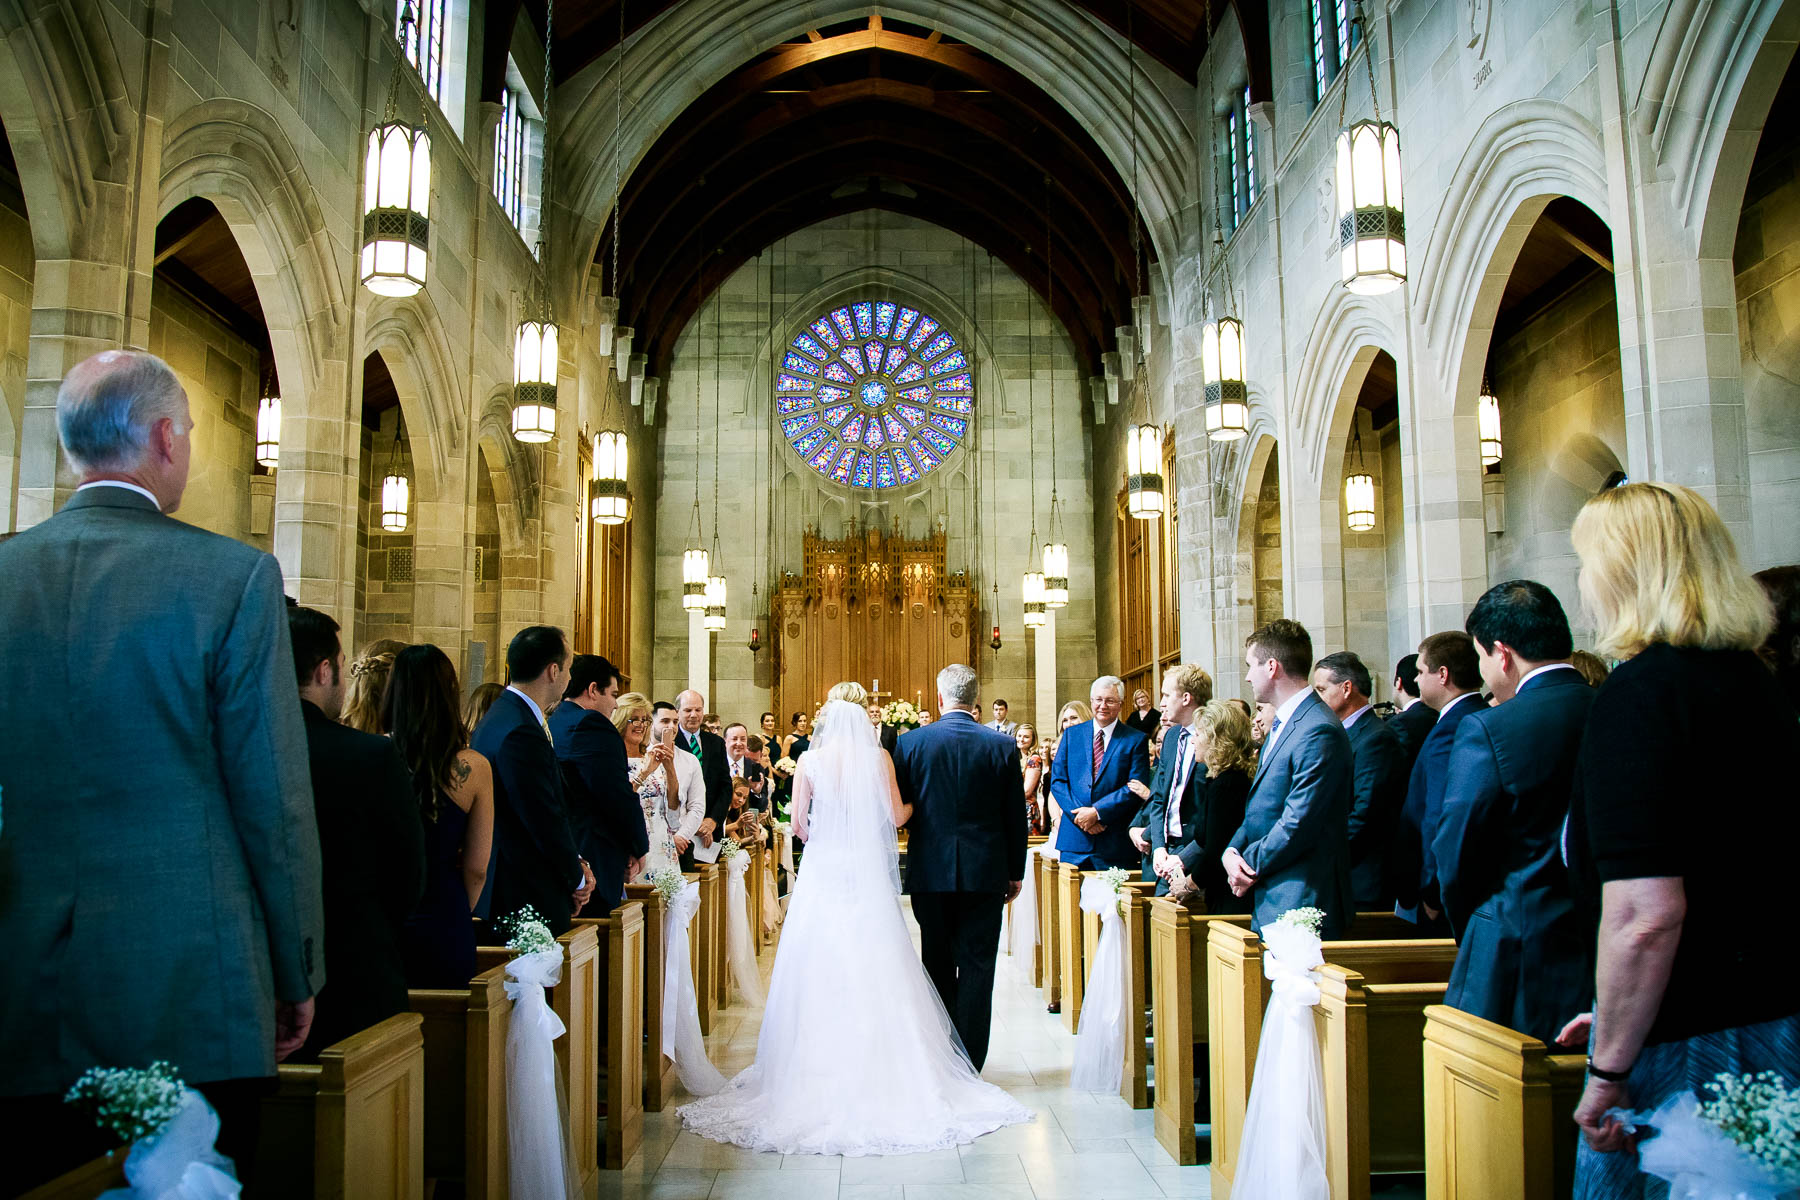 Father and bride walk down the aisle during a wedding ceremony at Baker Memorial United Methodist Church in St. Charles